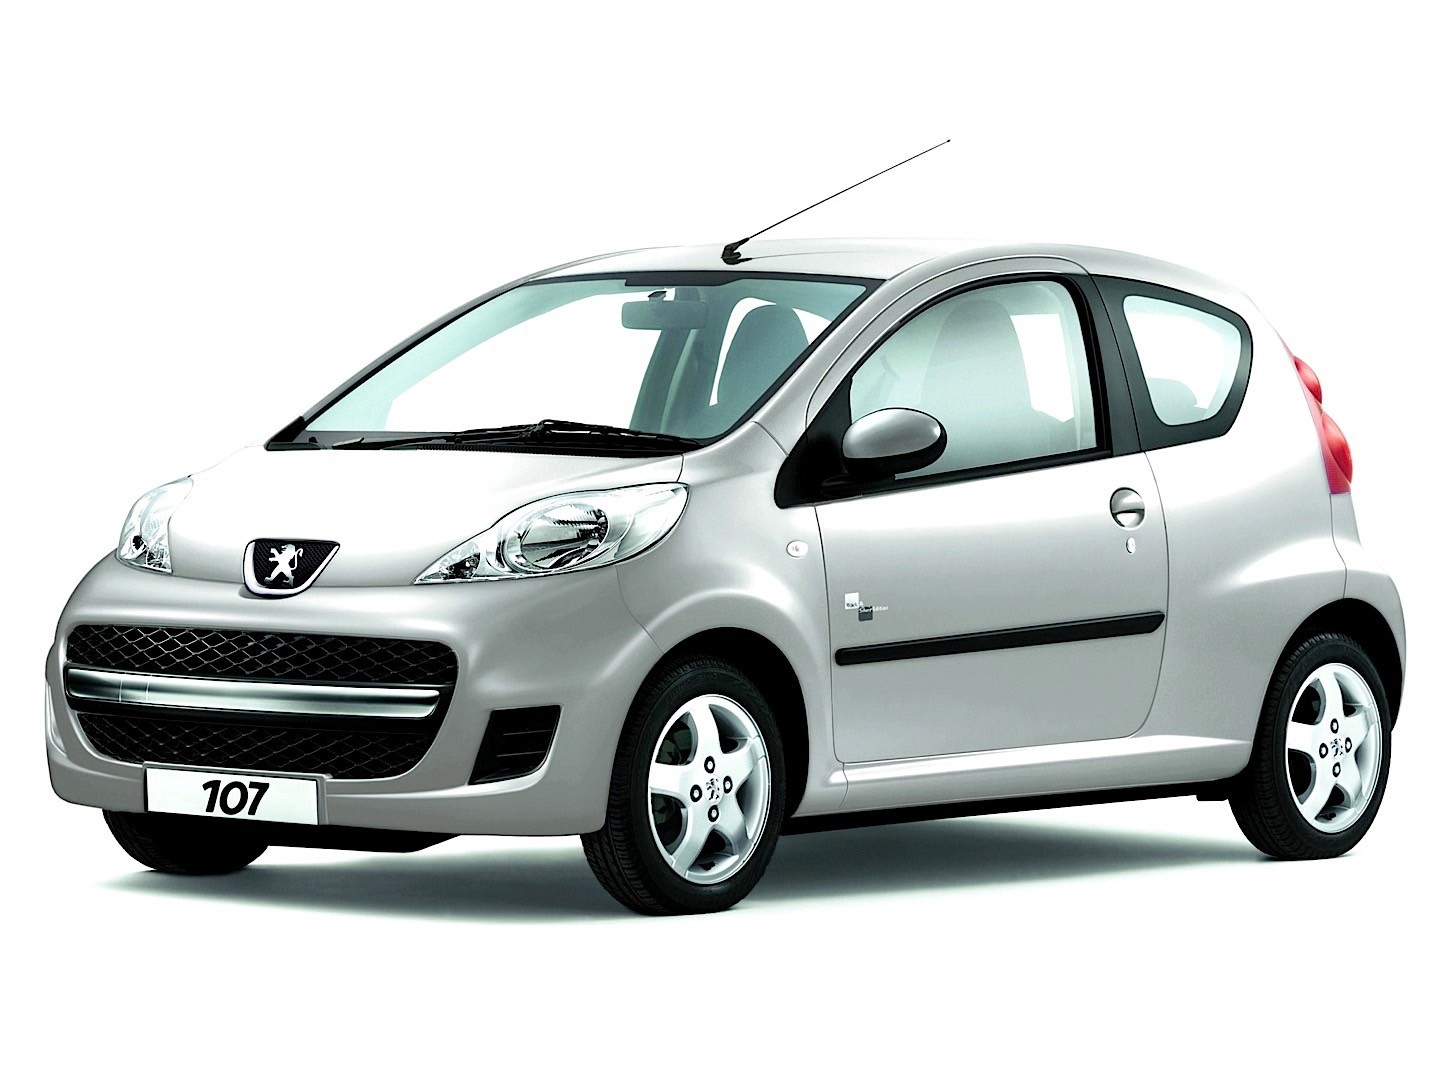 Peugeot 107 I Restyling 2009 - 2012 Hatchback 3 door #4